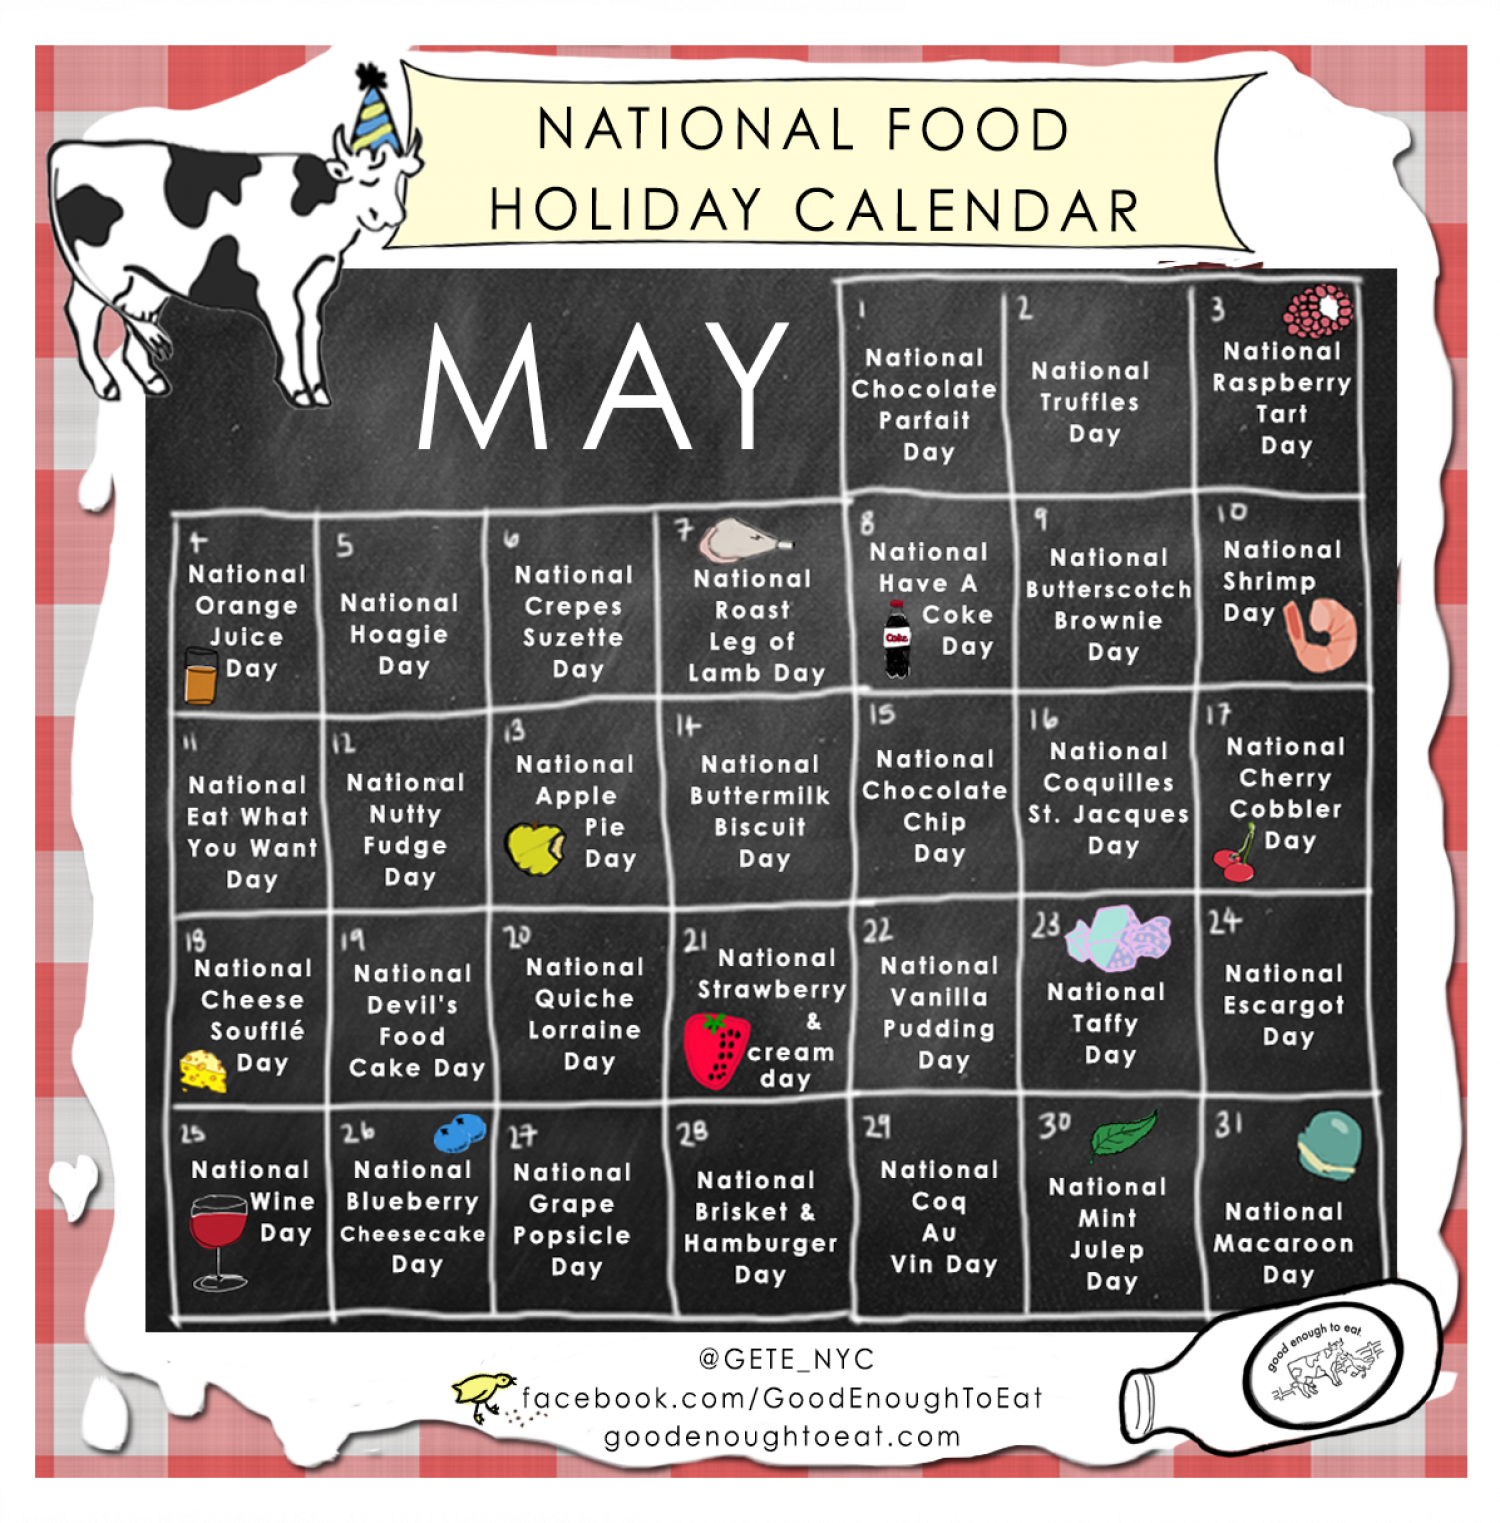 NATIONAL FOOD HOLIDAY CALENDAR - MAY Infographic